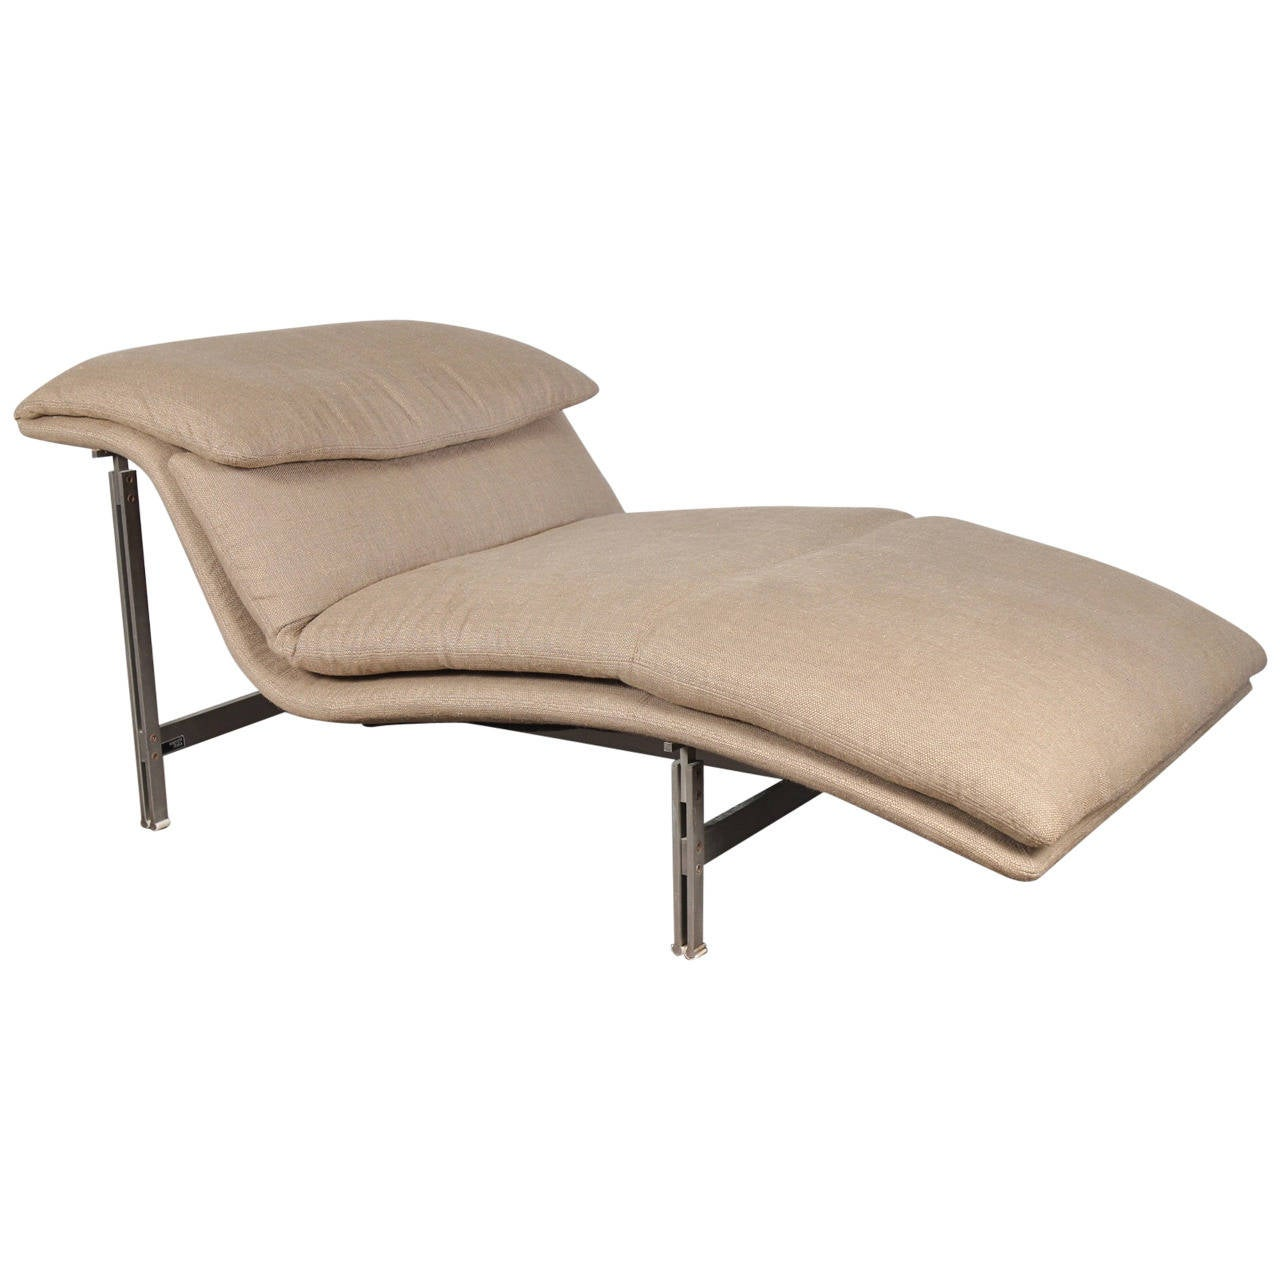 Saporiti wave chaise longue at 1stdibs for Chaise longue furniture